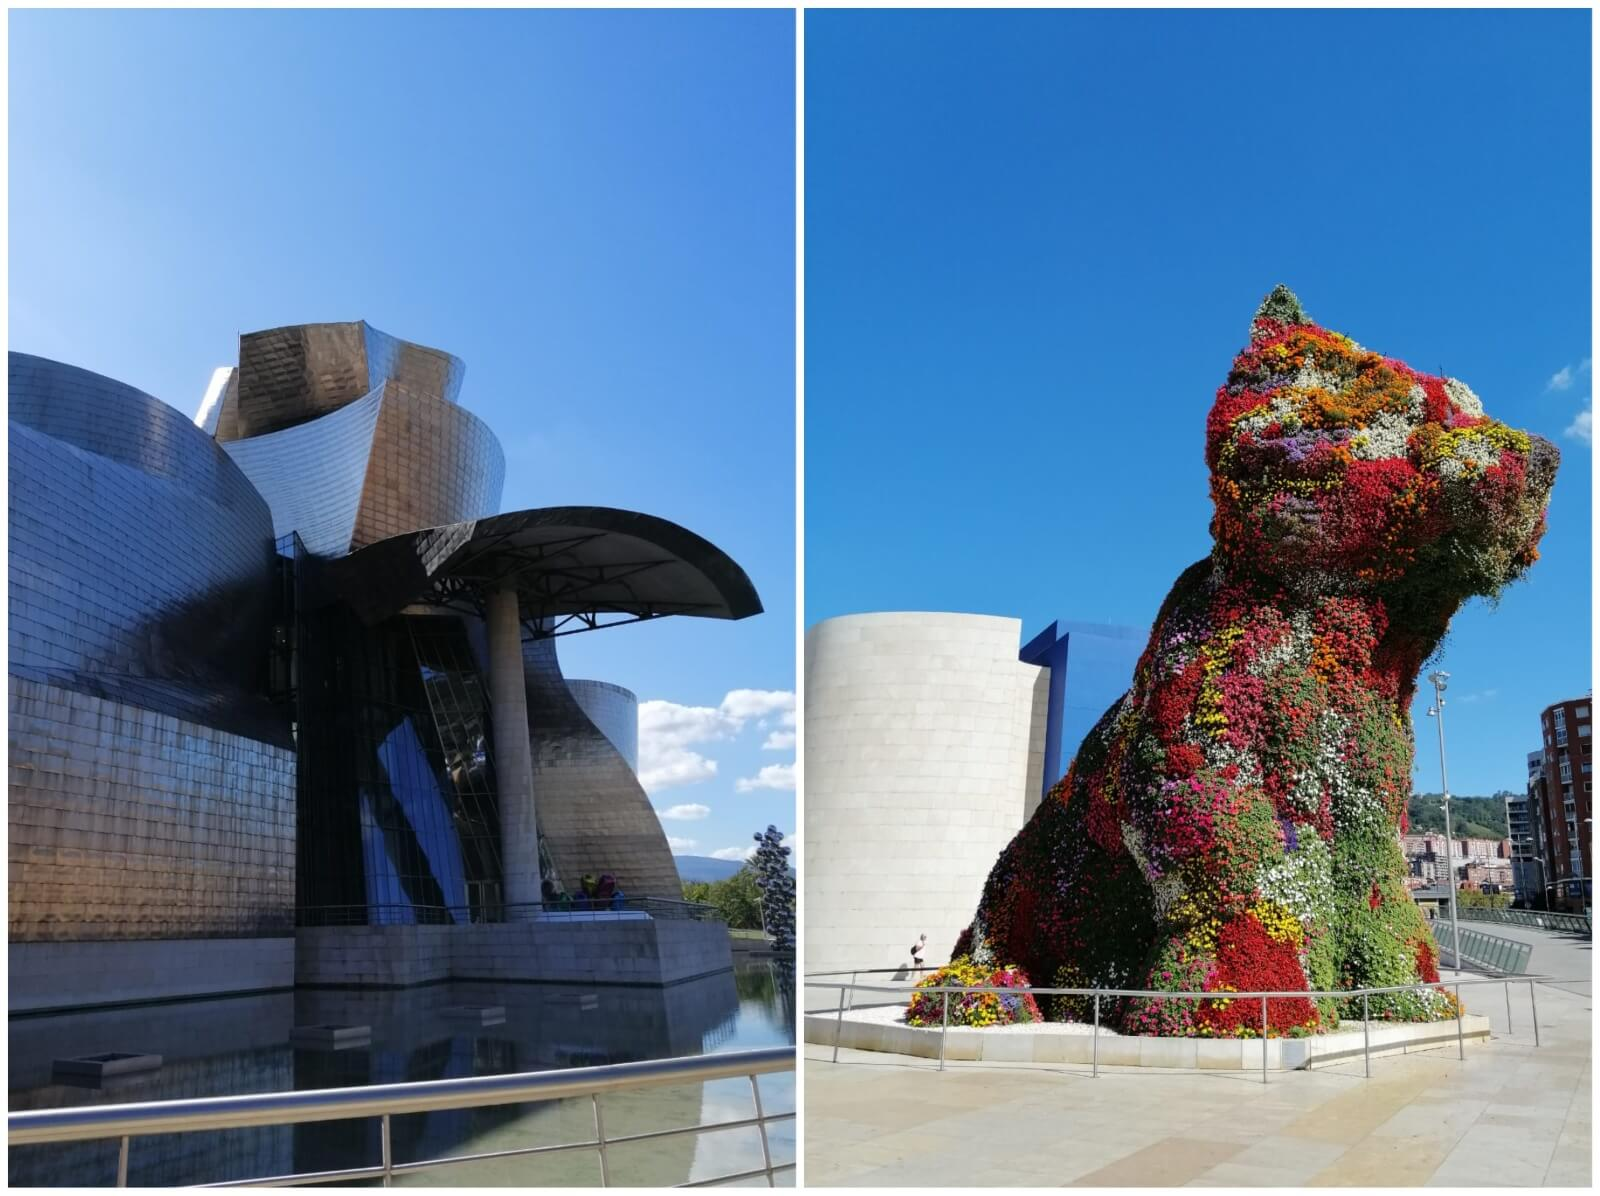 What to see and do in Northern Spain: top 6 ideas - 3. Guggenheim Museum Bilbao